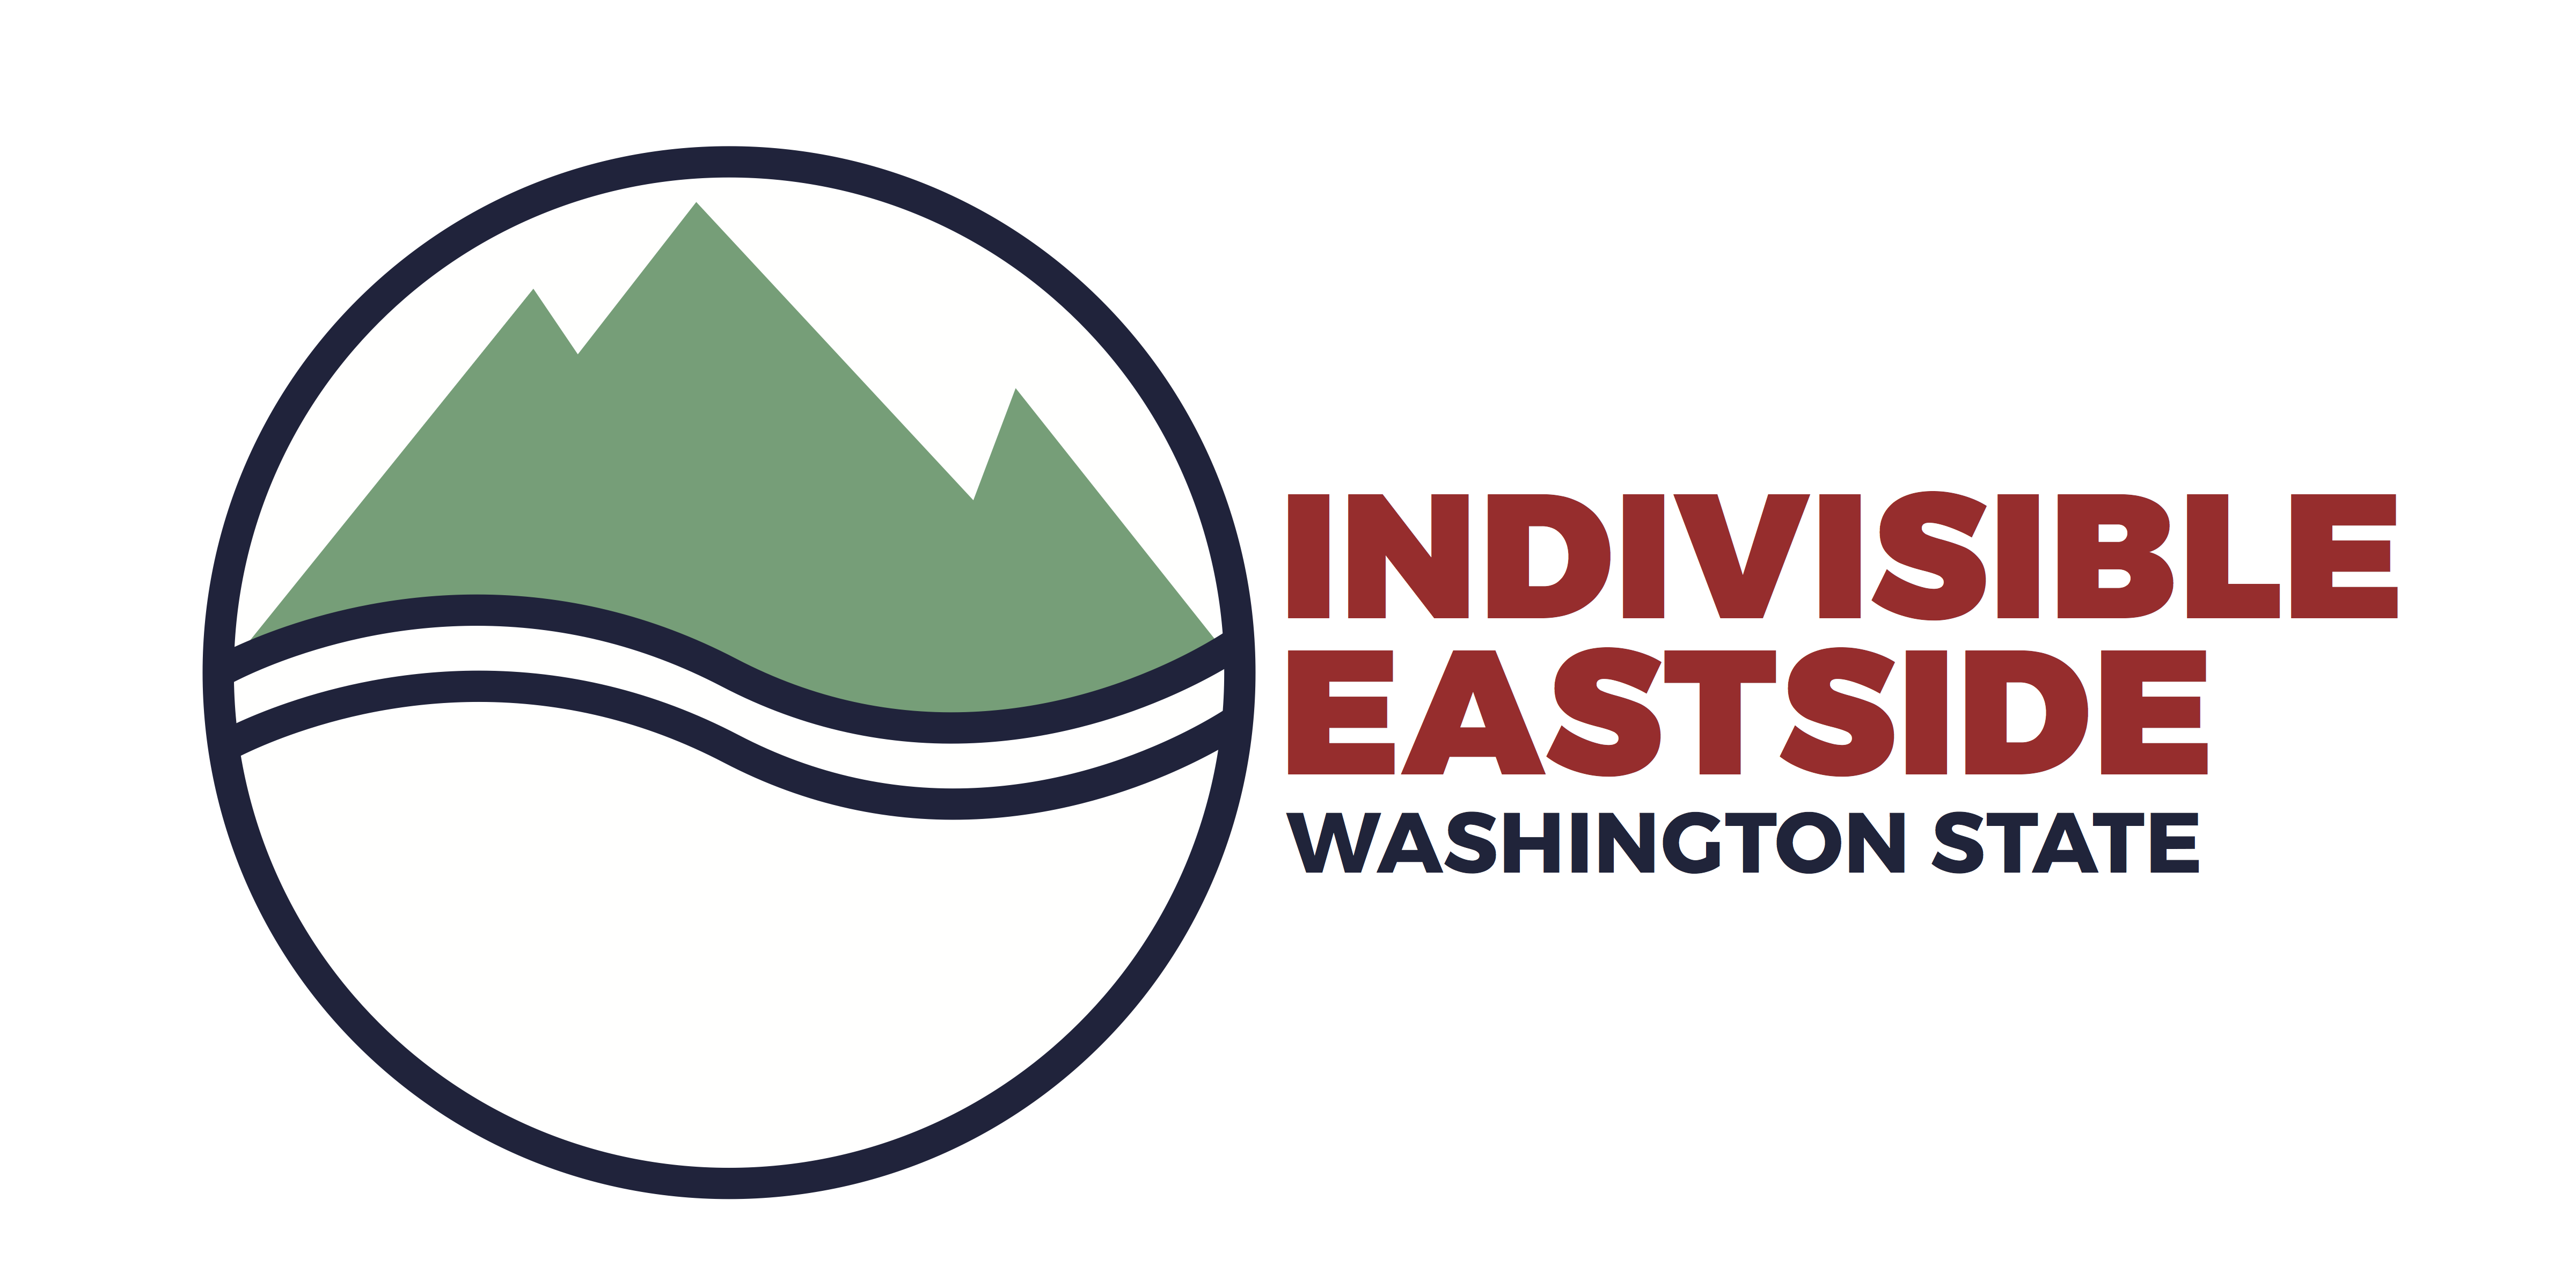 Indivisible Eastside